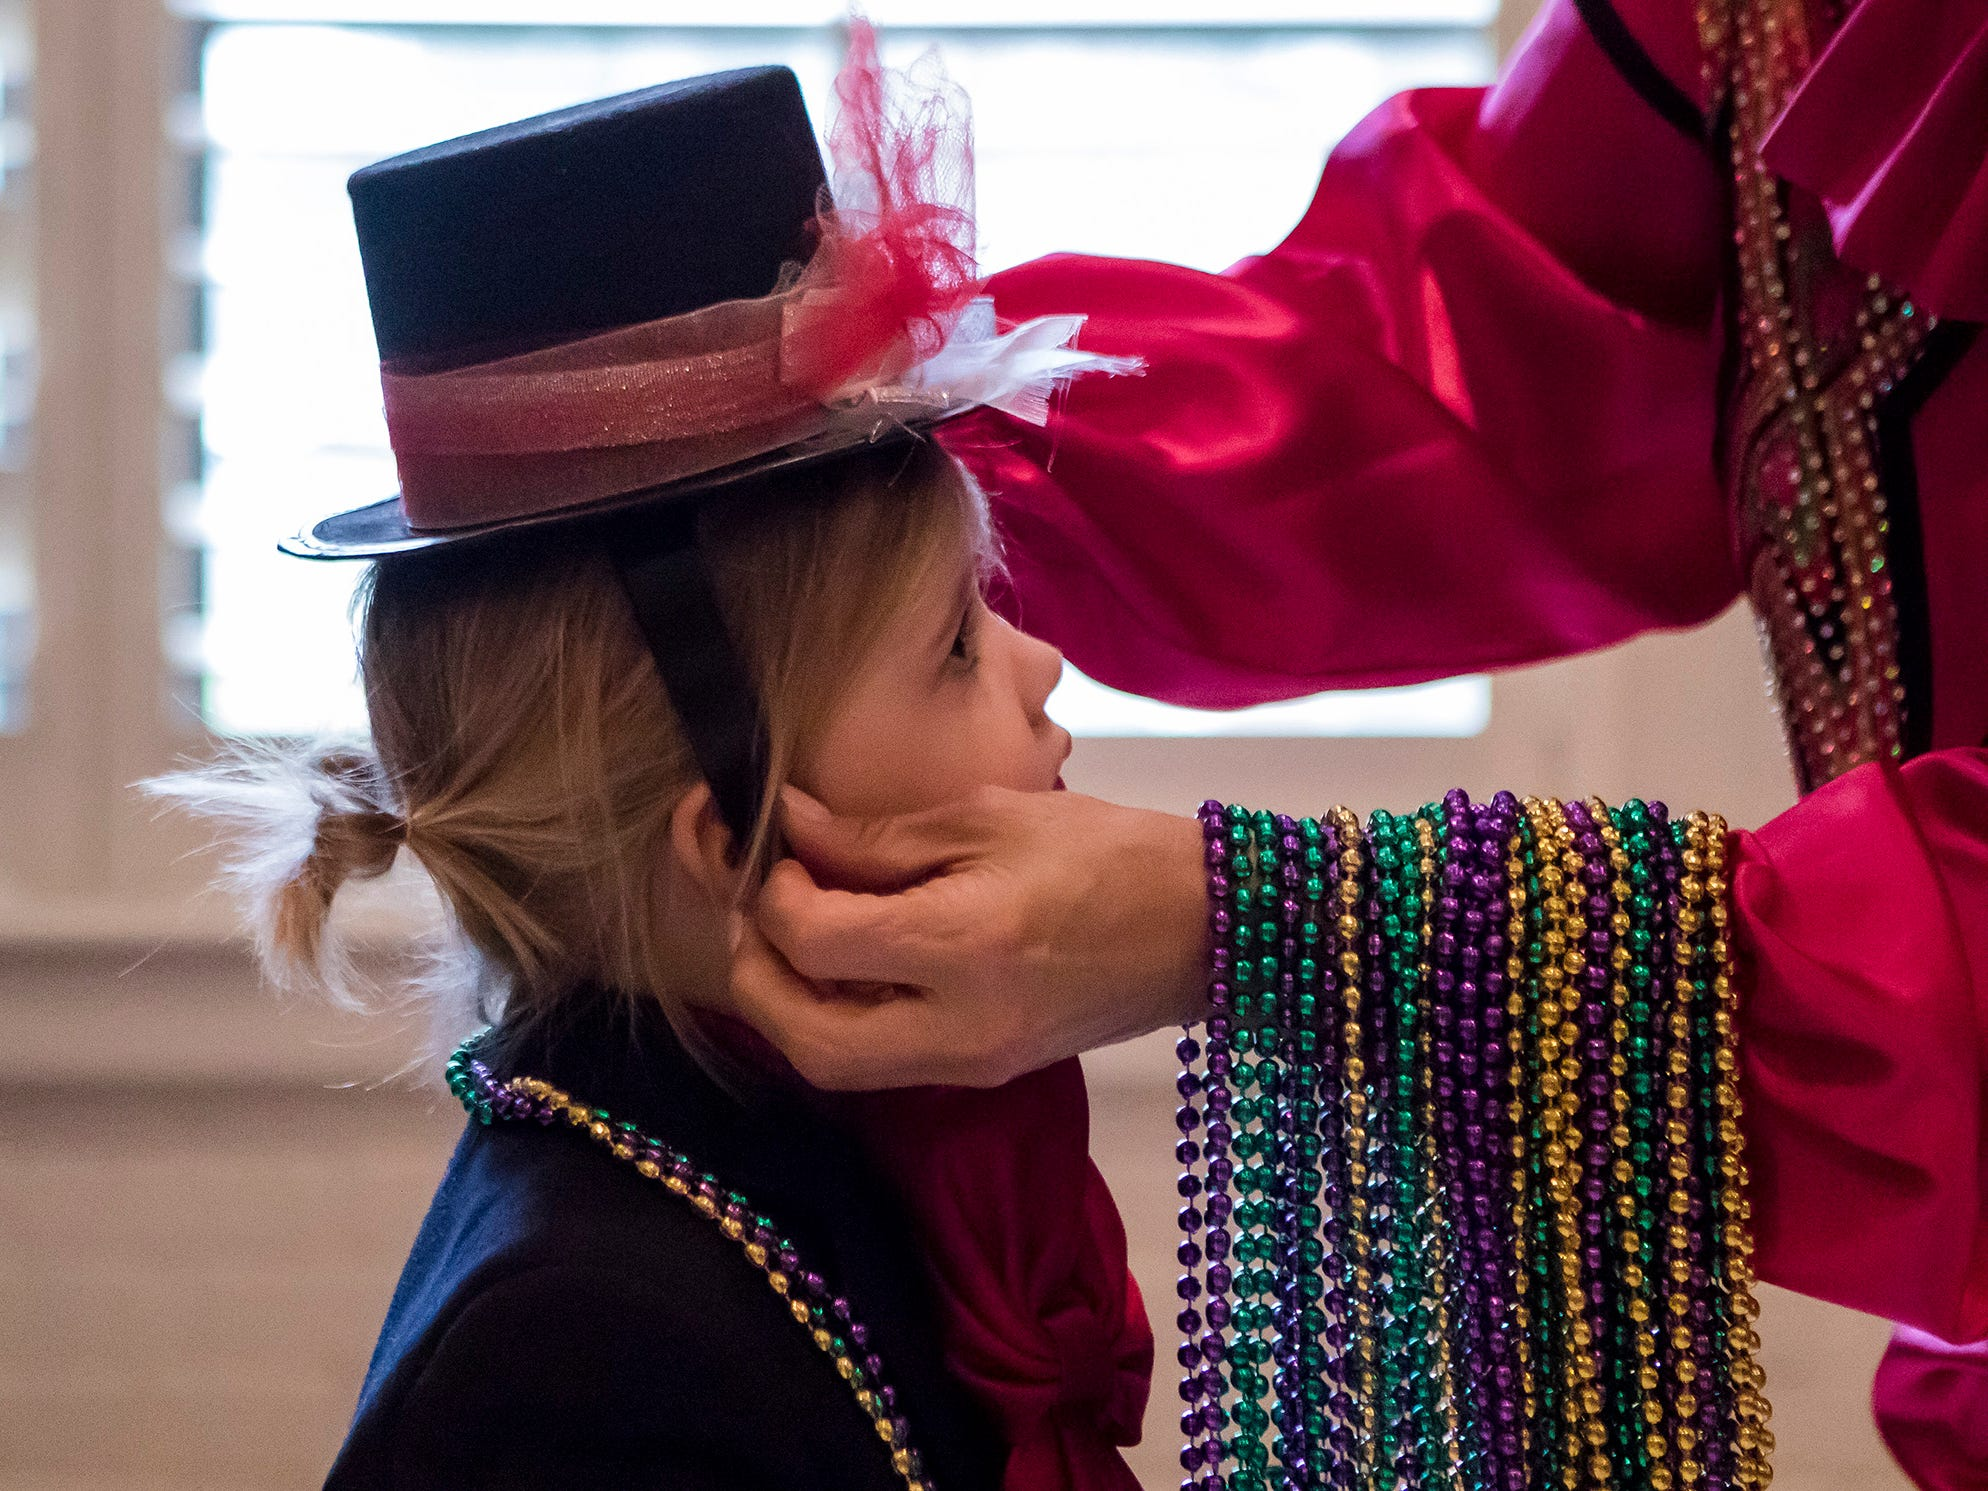 Denise Duplechin fixes Kateri Simon's, 3, hair after her hat fell off during the Krewe of Munchkins parade at St. Paul's Day School in Monroe, La. on Feb. 11.